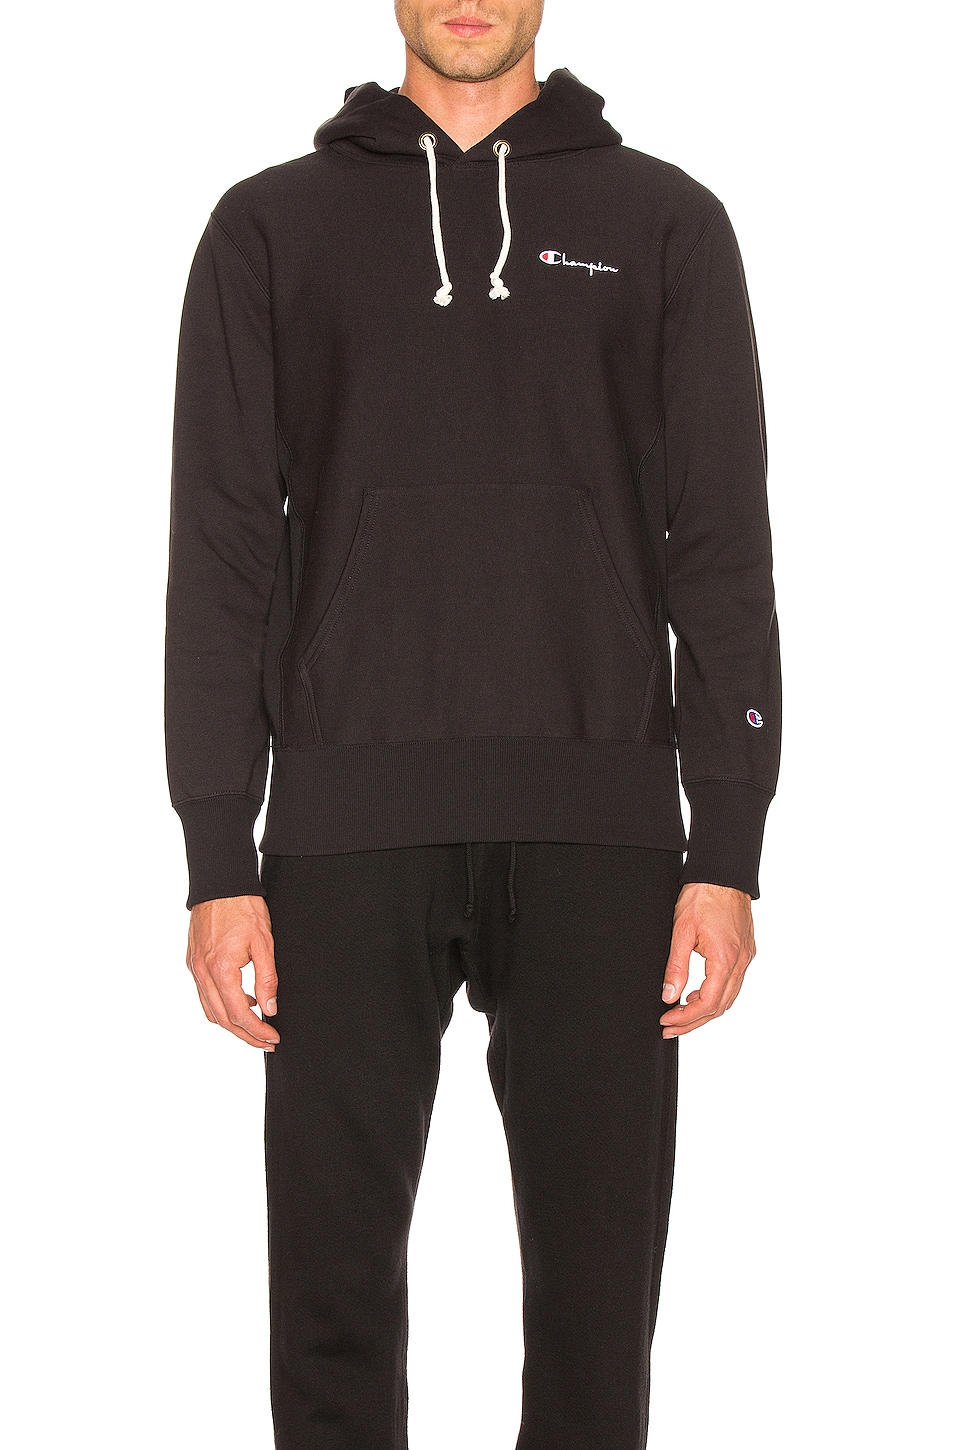 Champion Reverse Weave Champion Hooded Sweatshirt in Black